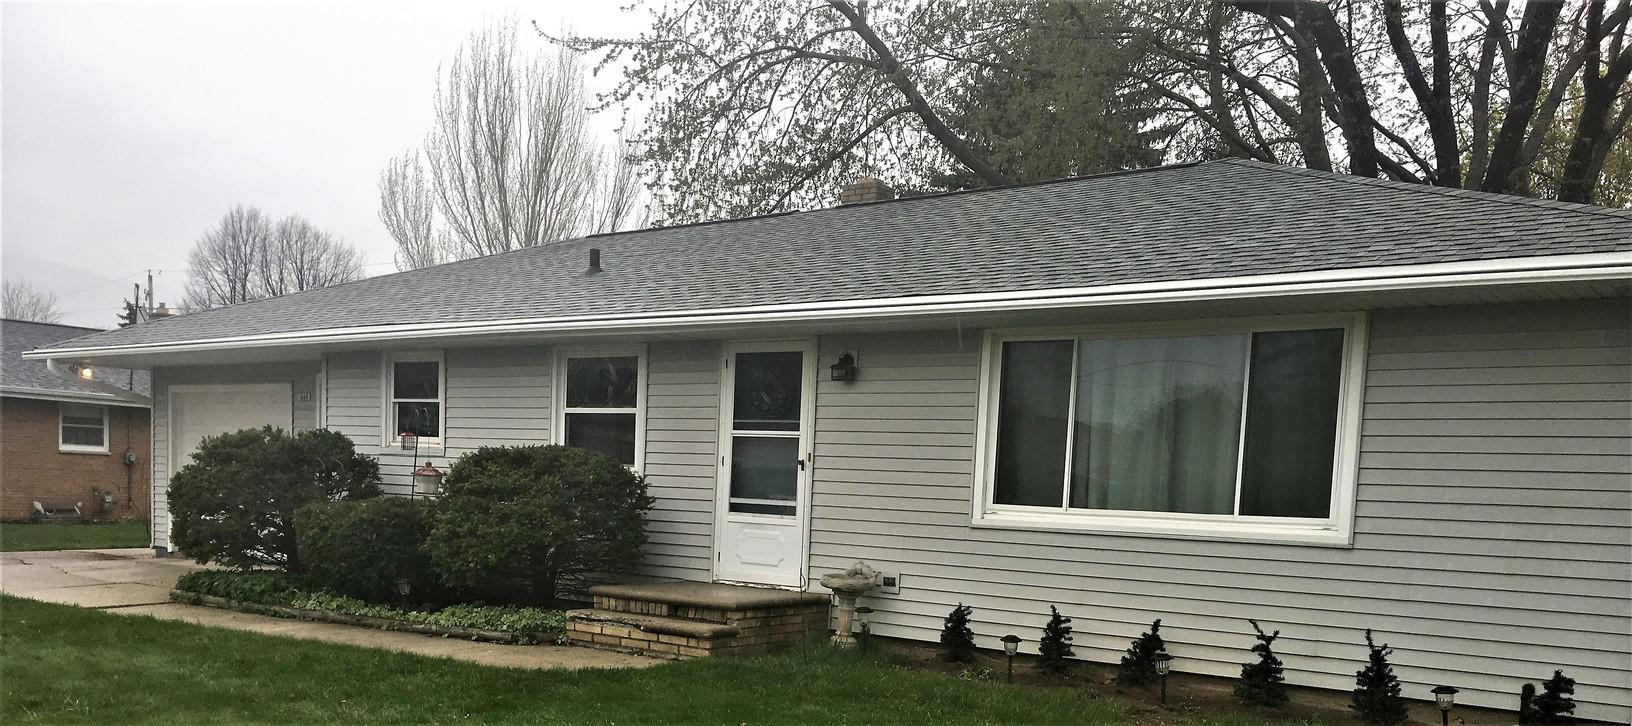 Homeowner in Green Bay Chooses Keeney Home Services for both GAF Roof and LeafGuard Gutters - After Photo